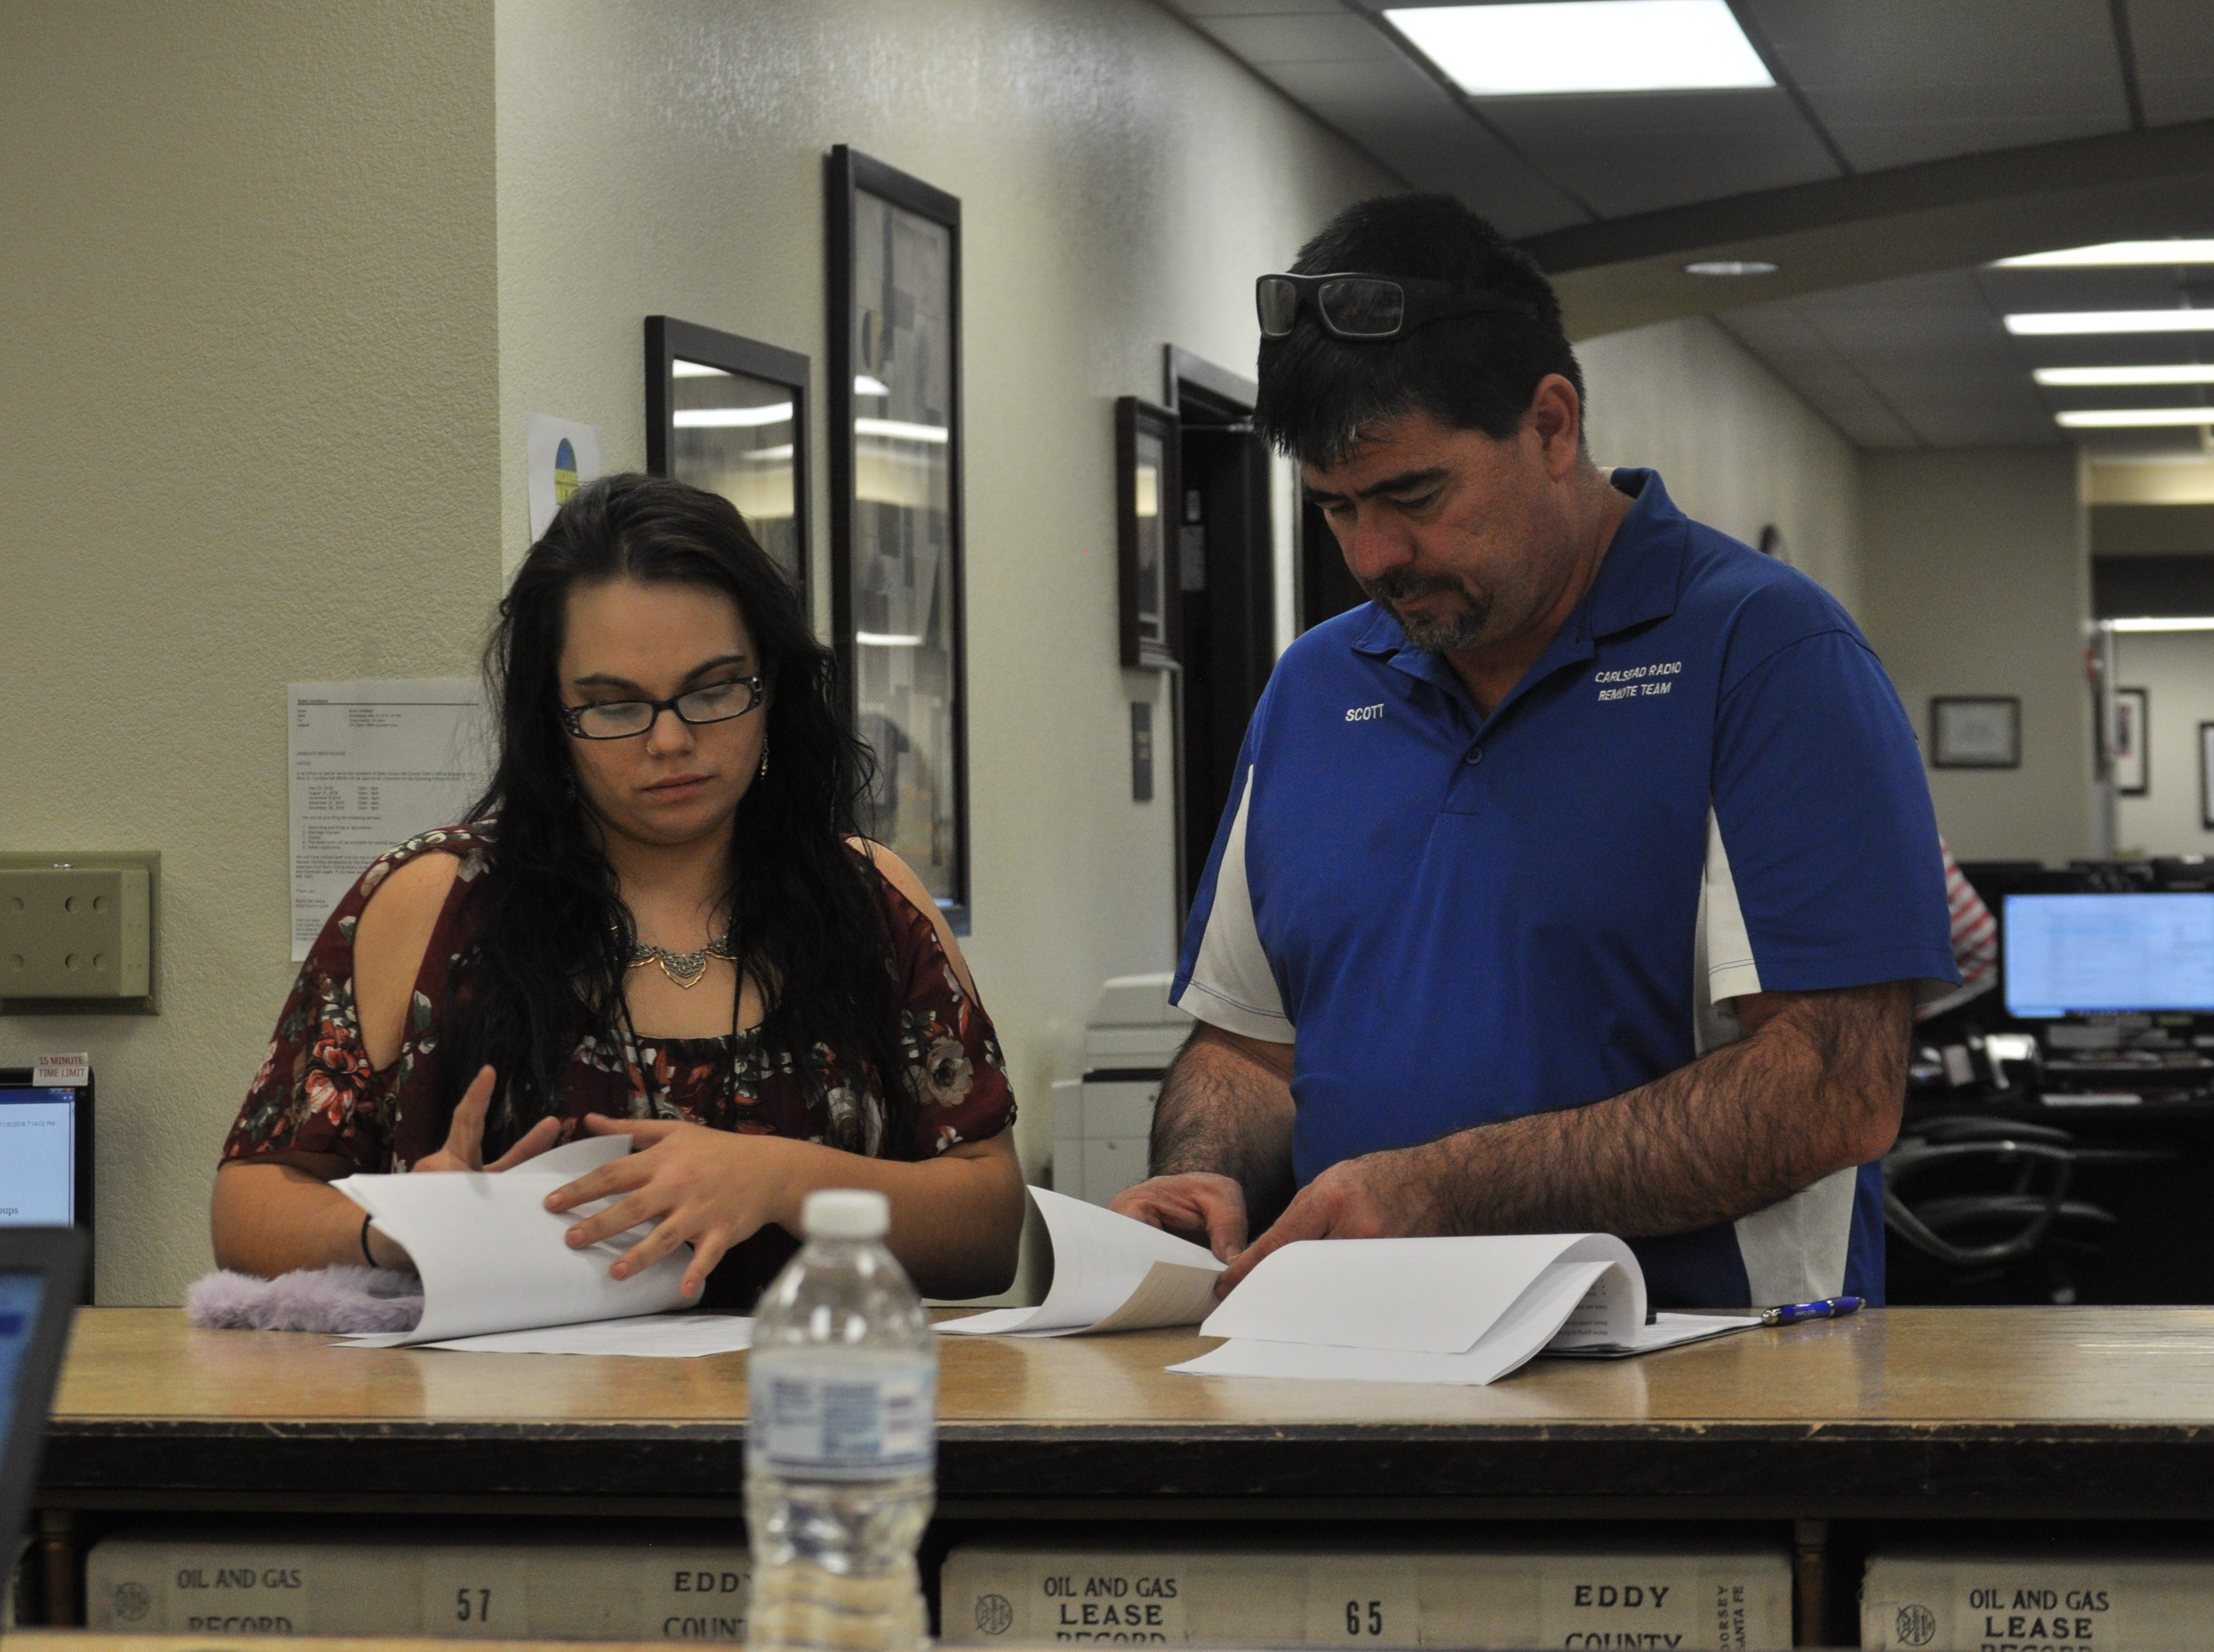 The Eddy County Bureau of Elections tallied voting results from 13 voting convenience centers Oct. 6 following the close of polling locations.